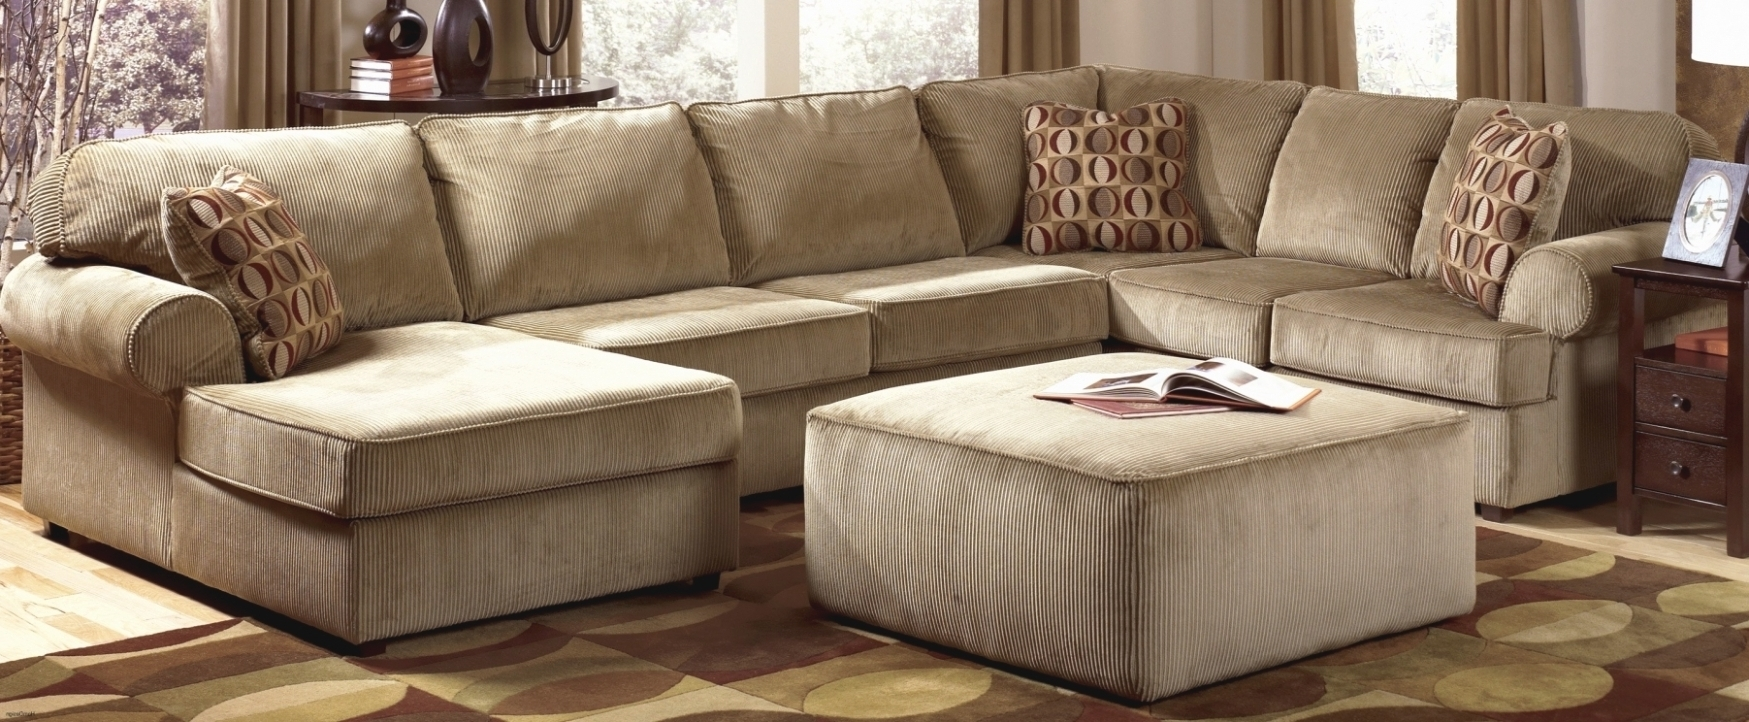 25 Ideas Of Outdoor Sectional Sofa At Target Throughout Fashionable Target Sectional Sofas (Gallery 9 of 20)